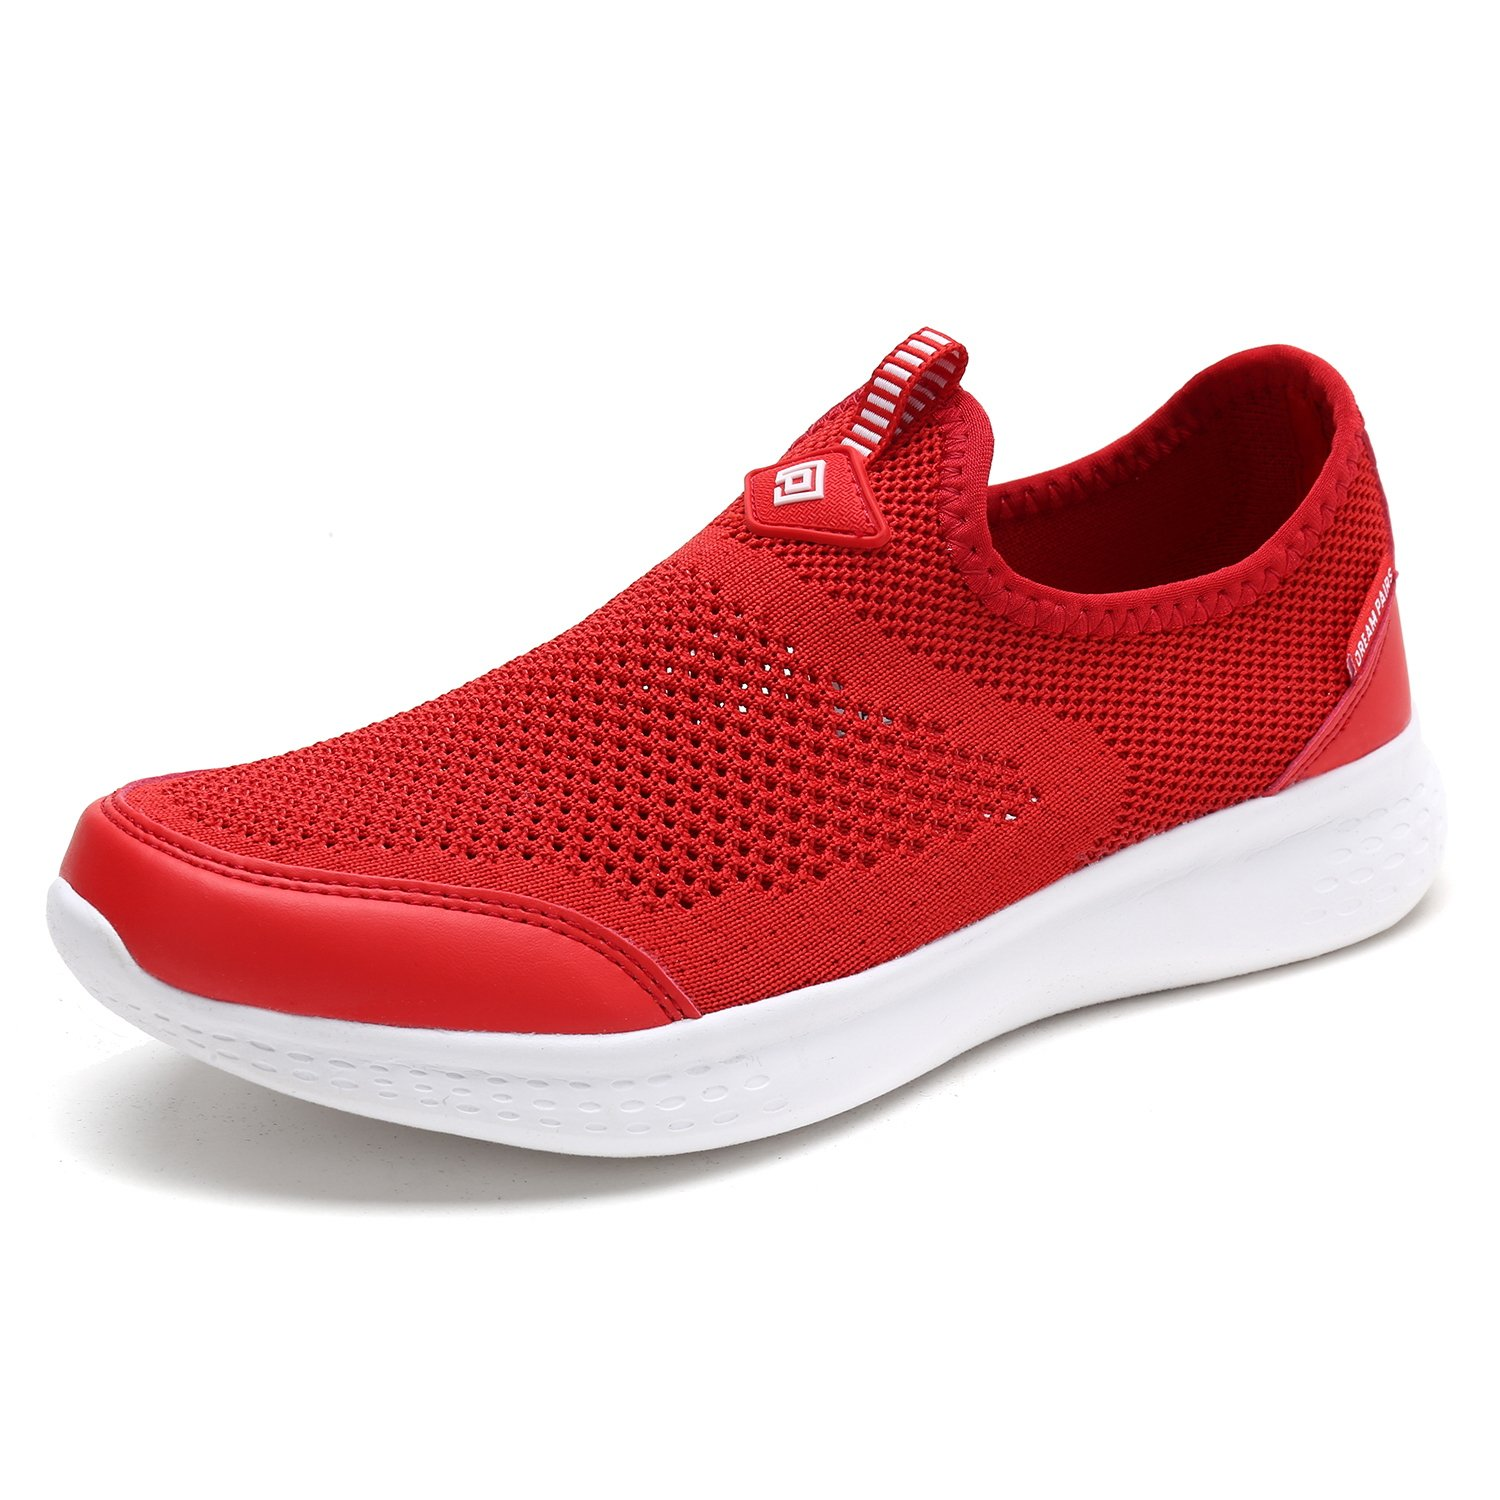 DREAM PAIRS Women's C0189_W Red Fashion Running Shoes Sneakers Size 8 M US